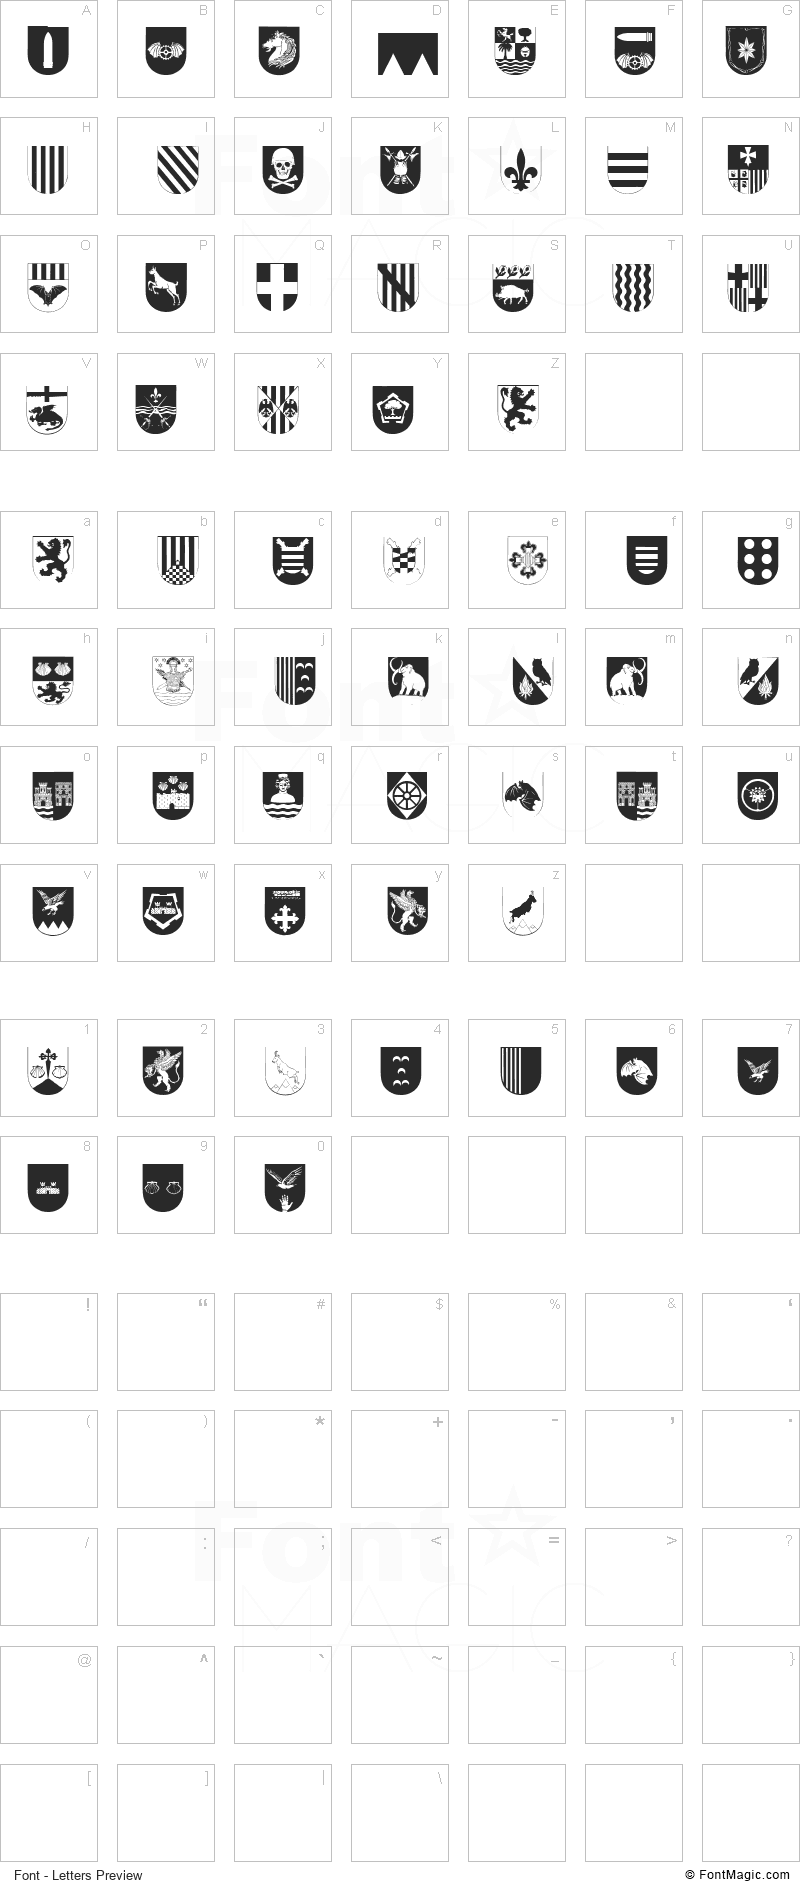 Spanish Army Shields Two Font - All Latters Preview Chart